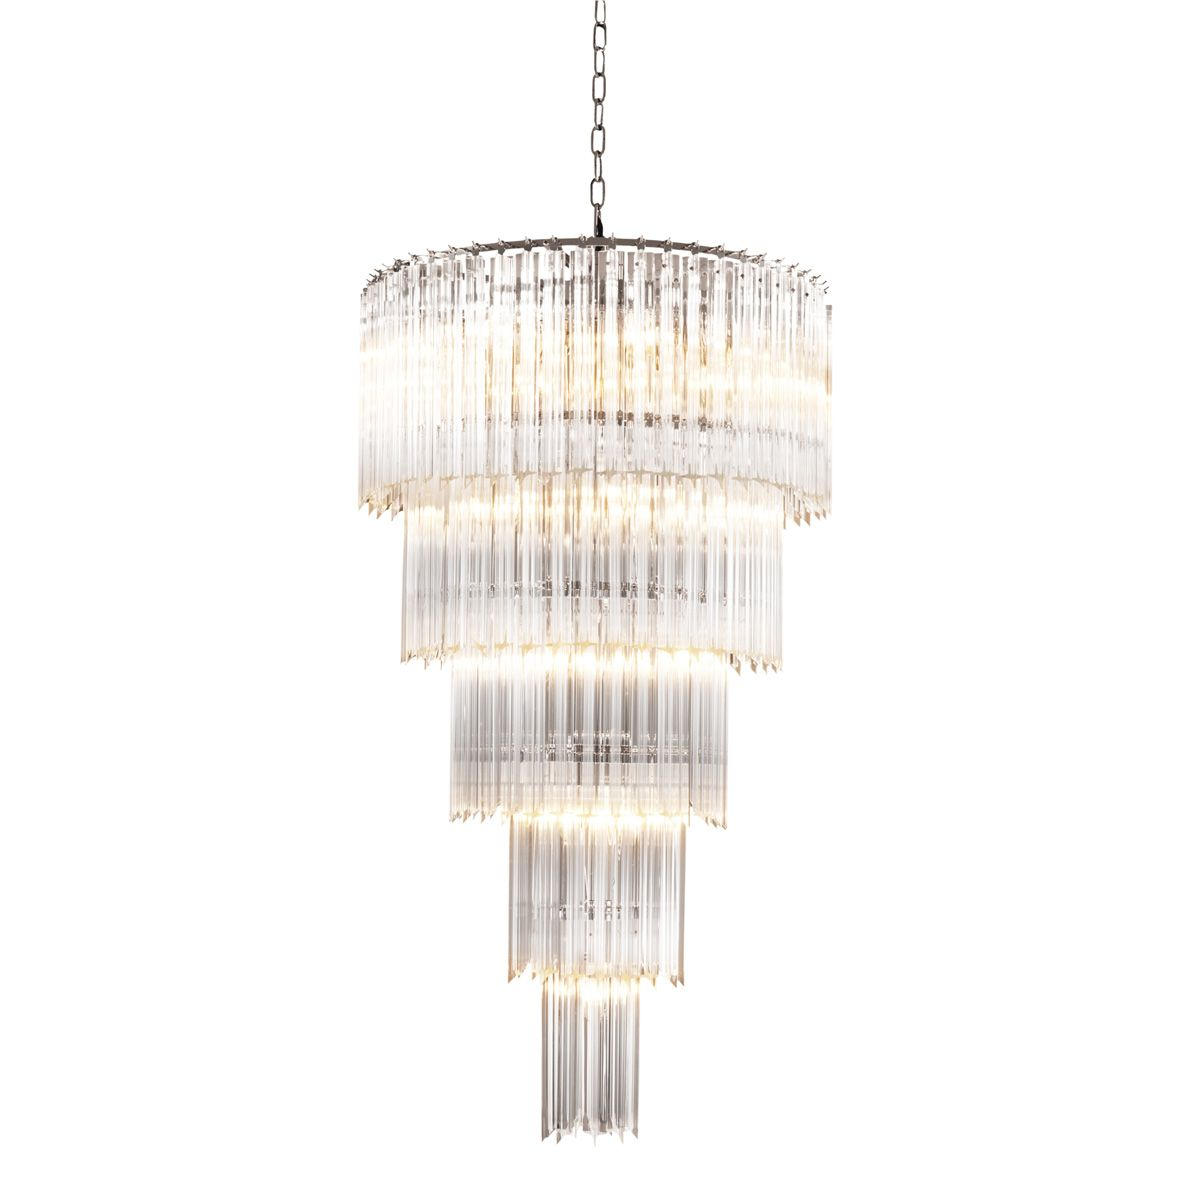 For lounge chandelier alpina l eichholtz eichholtz order eichholtz alpina chandelier range absolutely showstopping large hanging chandelier with glass droplets cascading from the nickel finish frame arubaitofo Image collections